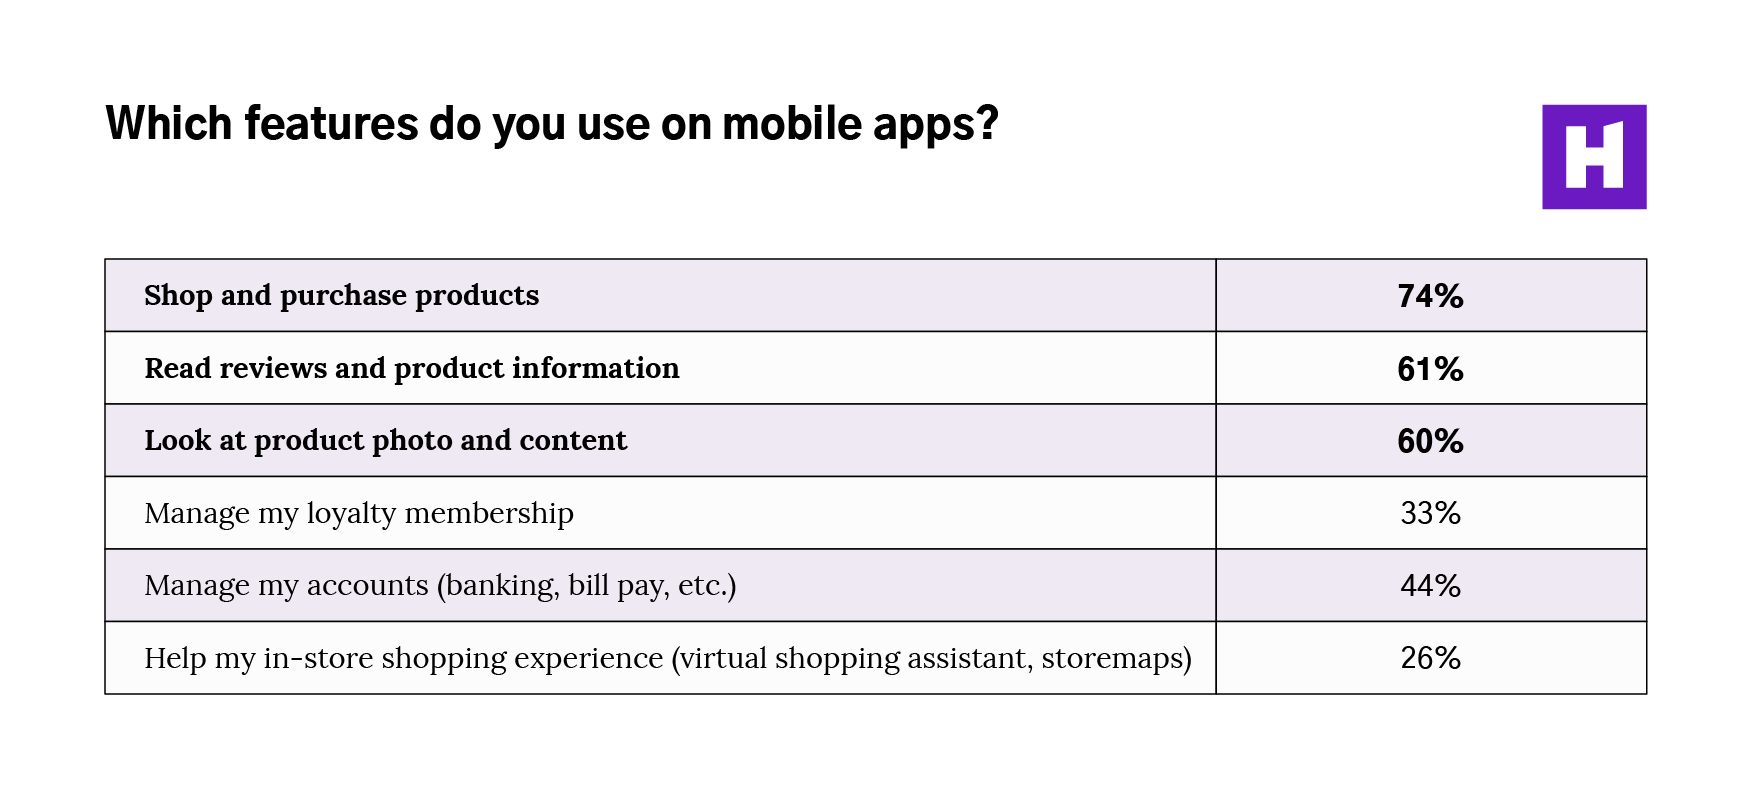 01-Which-features-do-you-use-on-mobile-apps